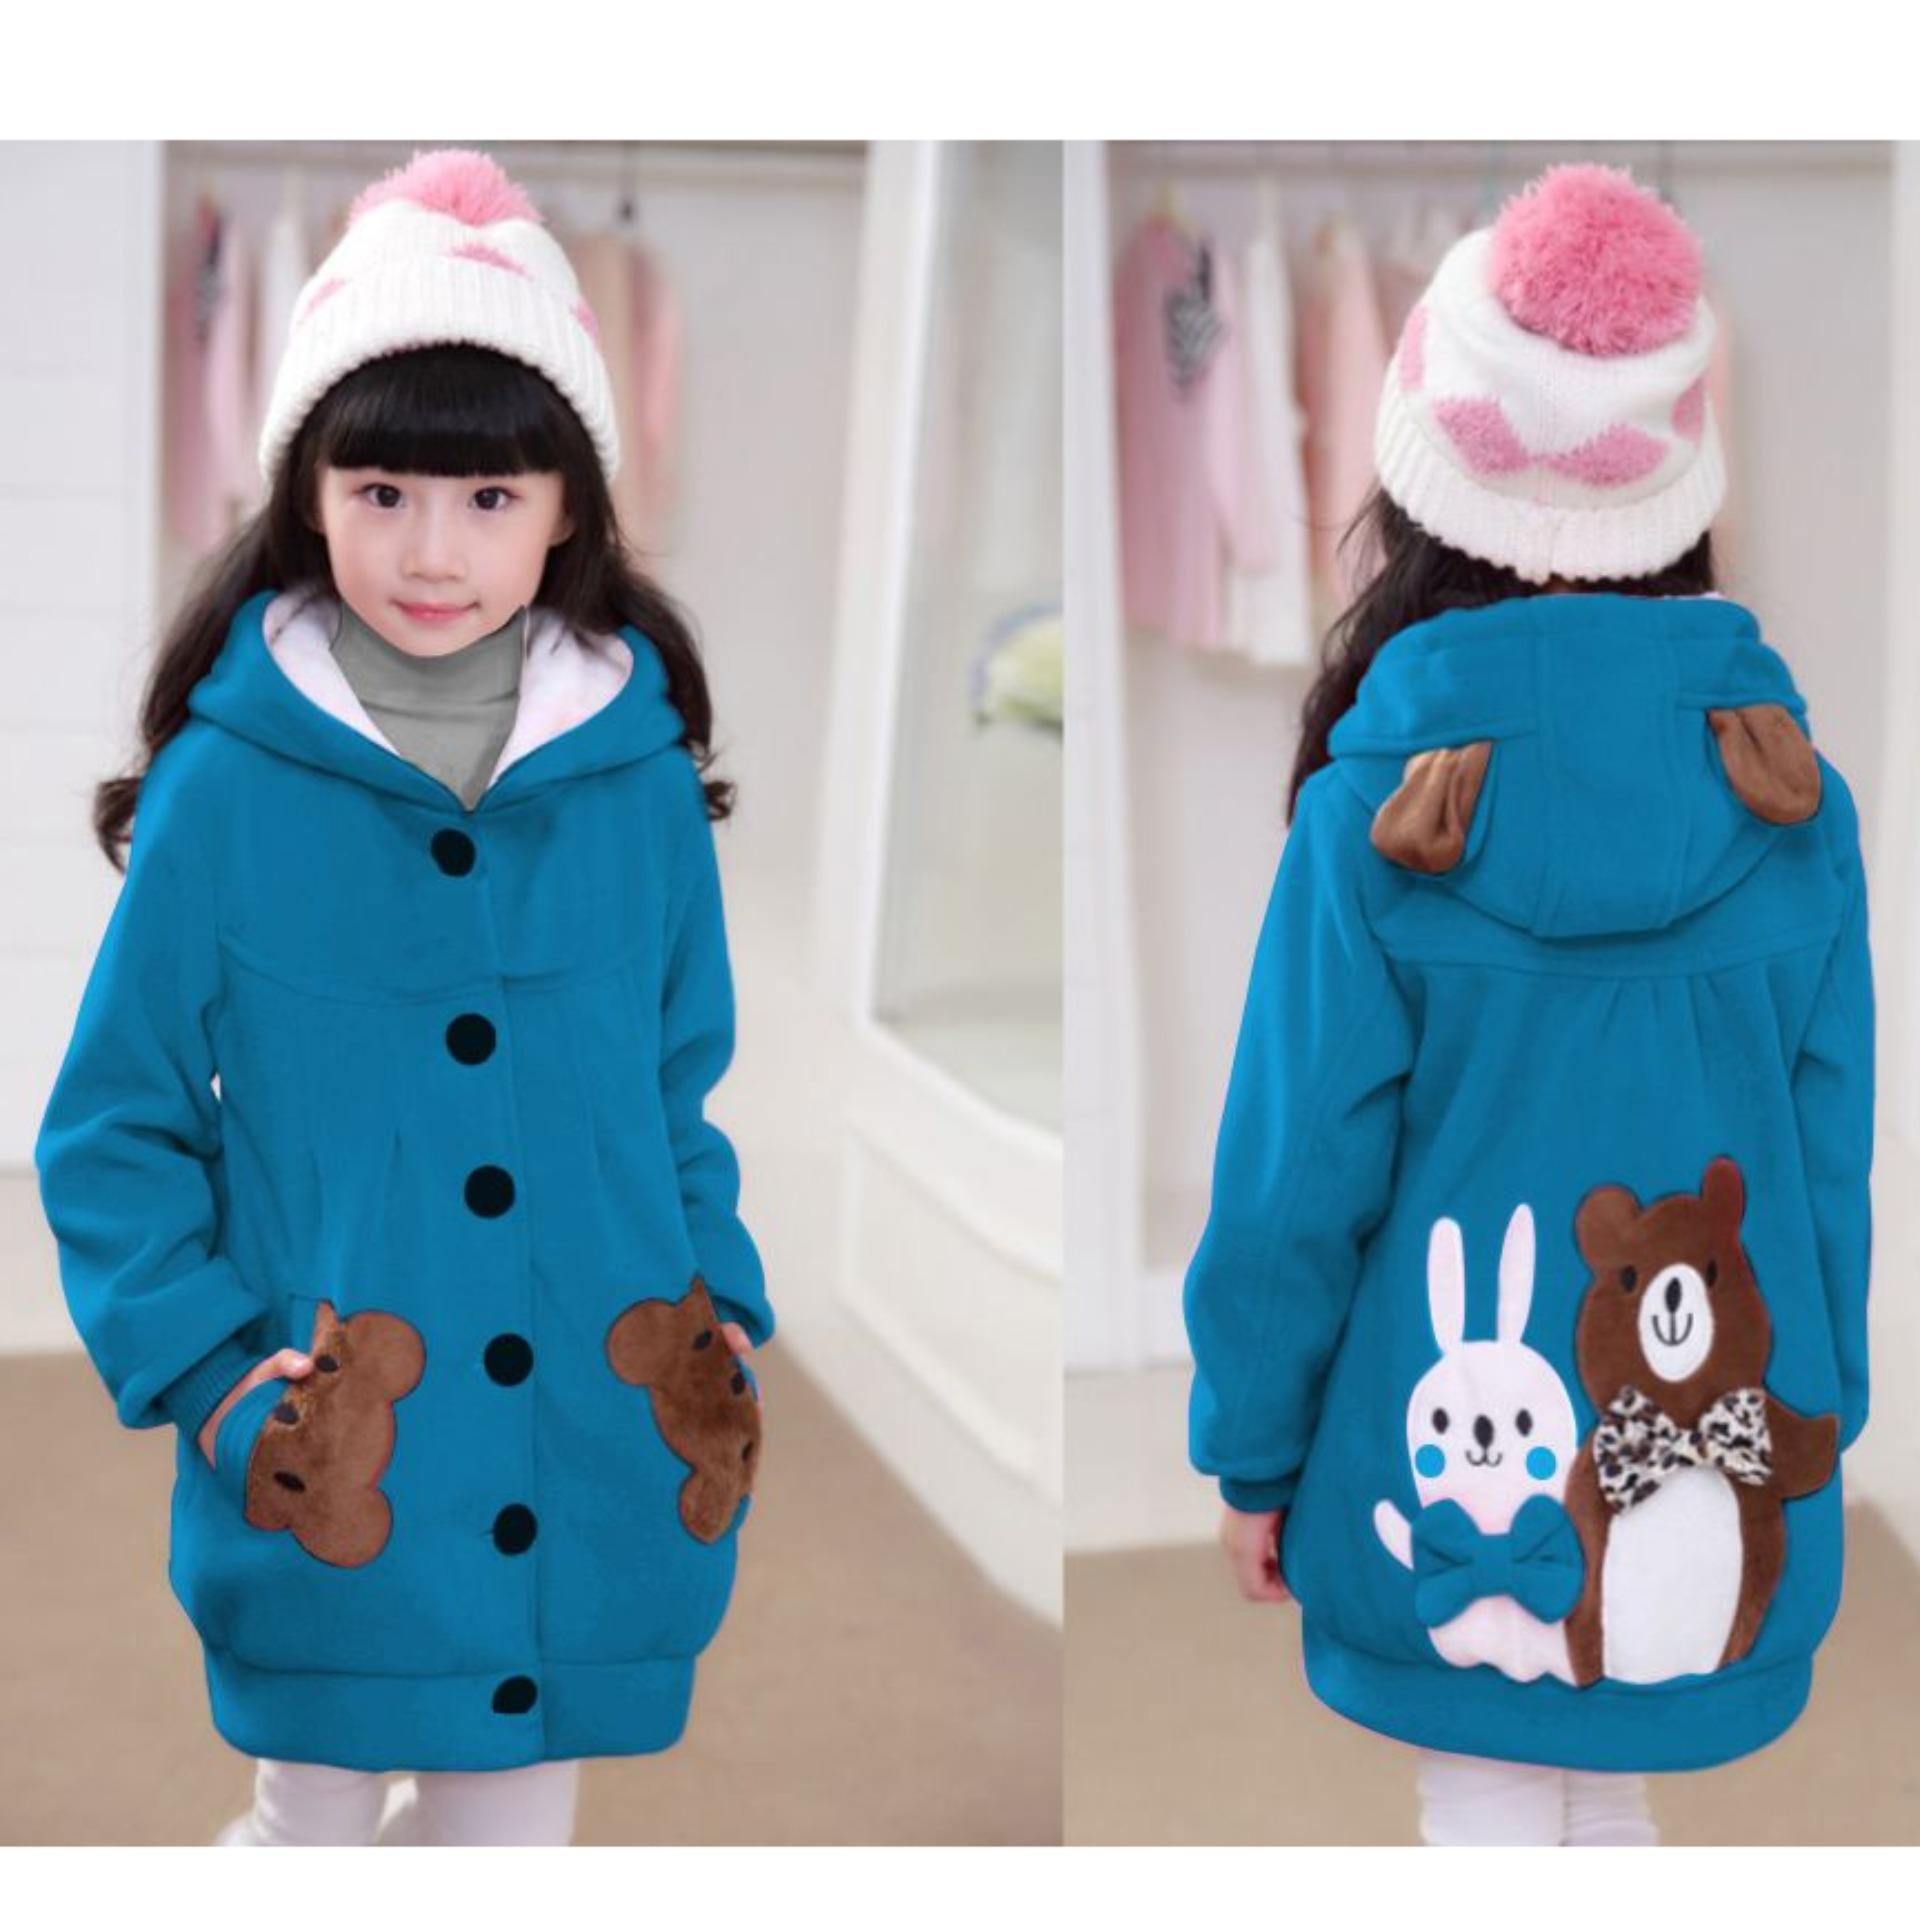 Vrichel Collection - Jaket / Hoddie Anak Perempuan Bear & Bunny By Vrichel Collection.